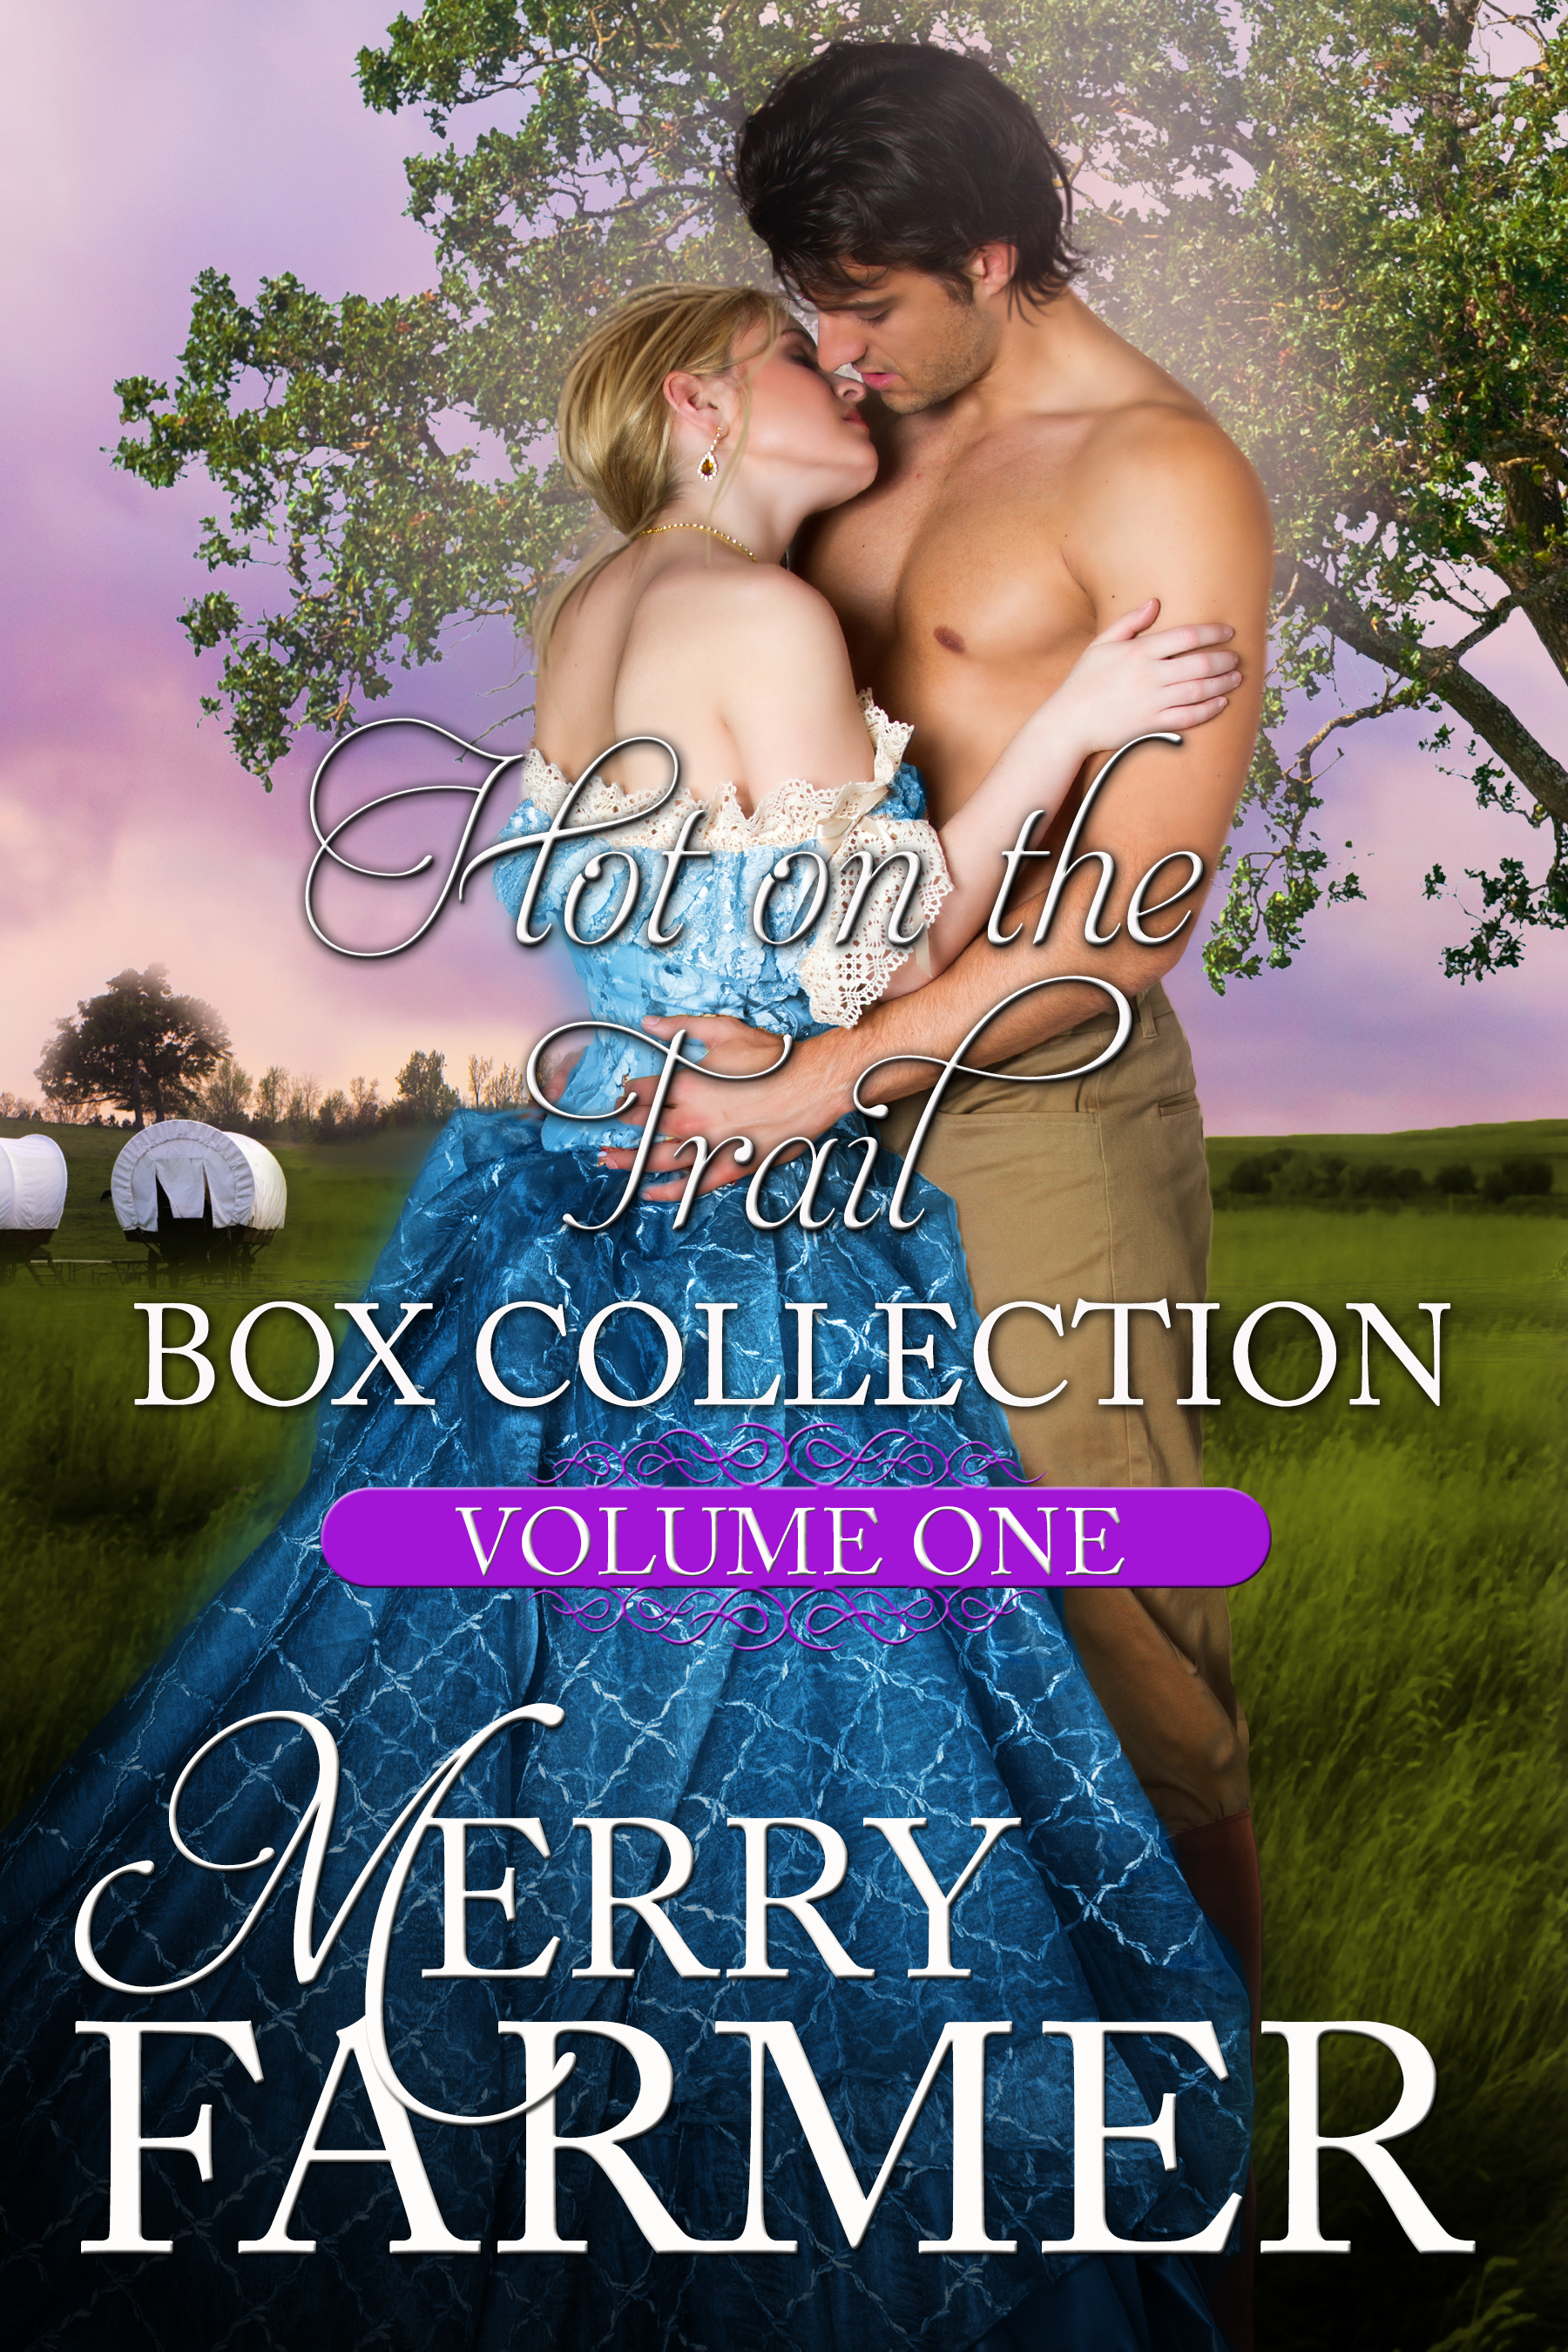 Hot on the Trail: Box Collection (Volume 1) - The first three books of the popular Hot on the Trail series are together here for the first time, along with an all-new short story, A Haskell Christmas Reunion! Each book is a stand-alone that can be read without having read the others.Box Collection includes:Trail of KissesTrail of HopeTrail of LongingA Haskell Christmas ReunionPLEASE BE ADVISED: Steam Level – Very Hot